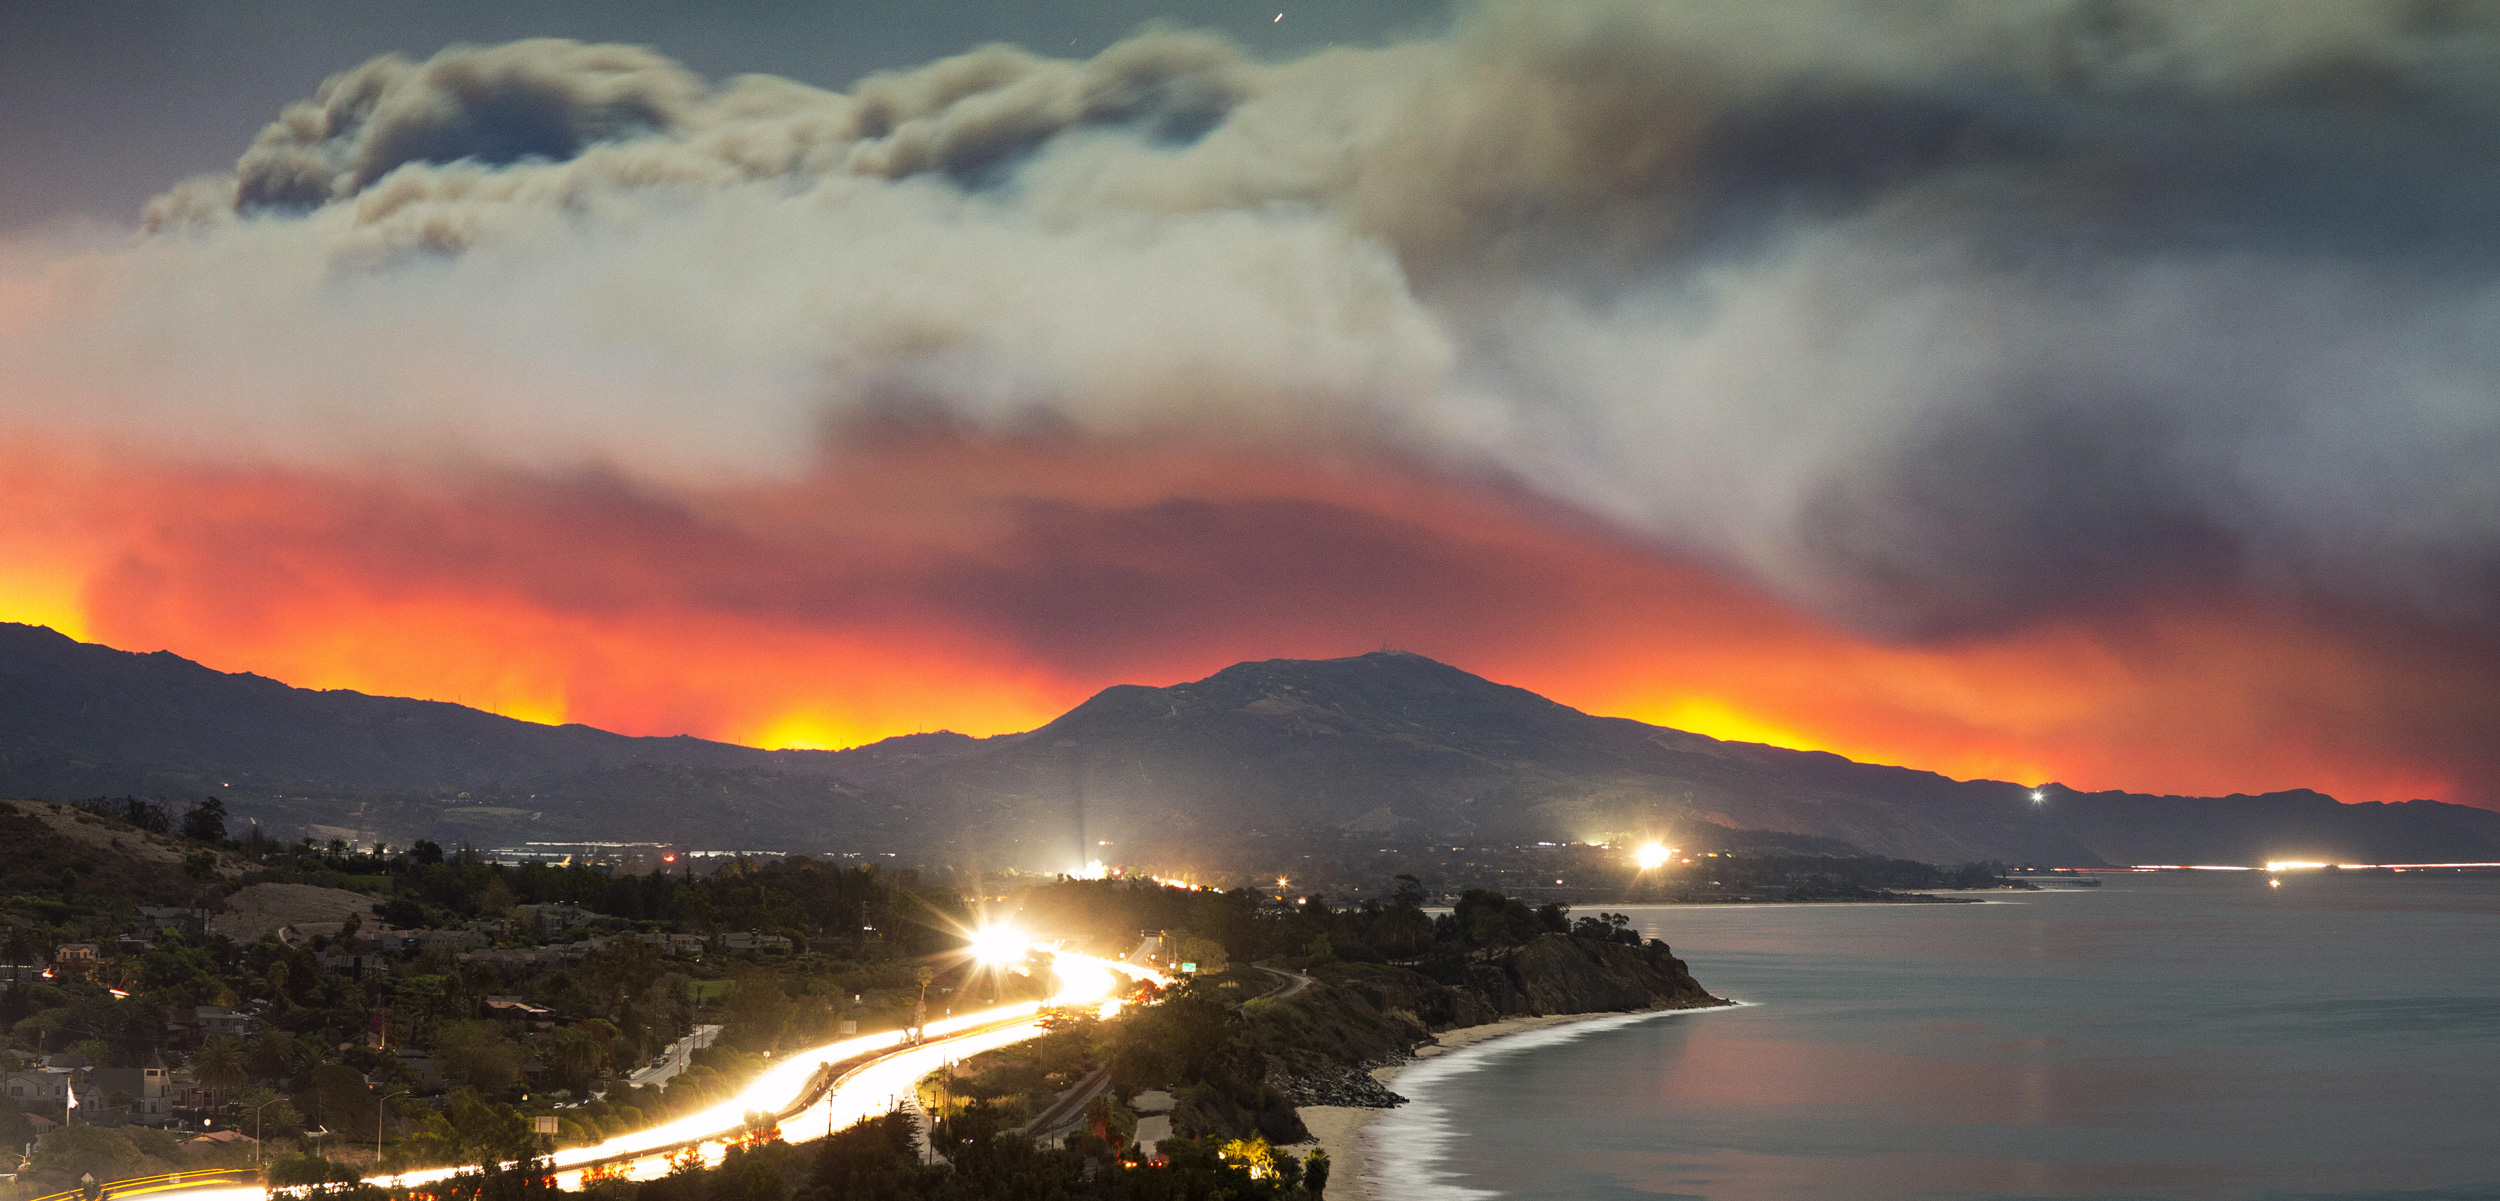 photo of the Tomas Fire in California, December 2017